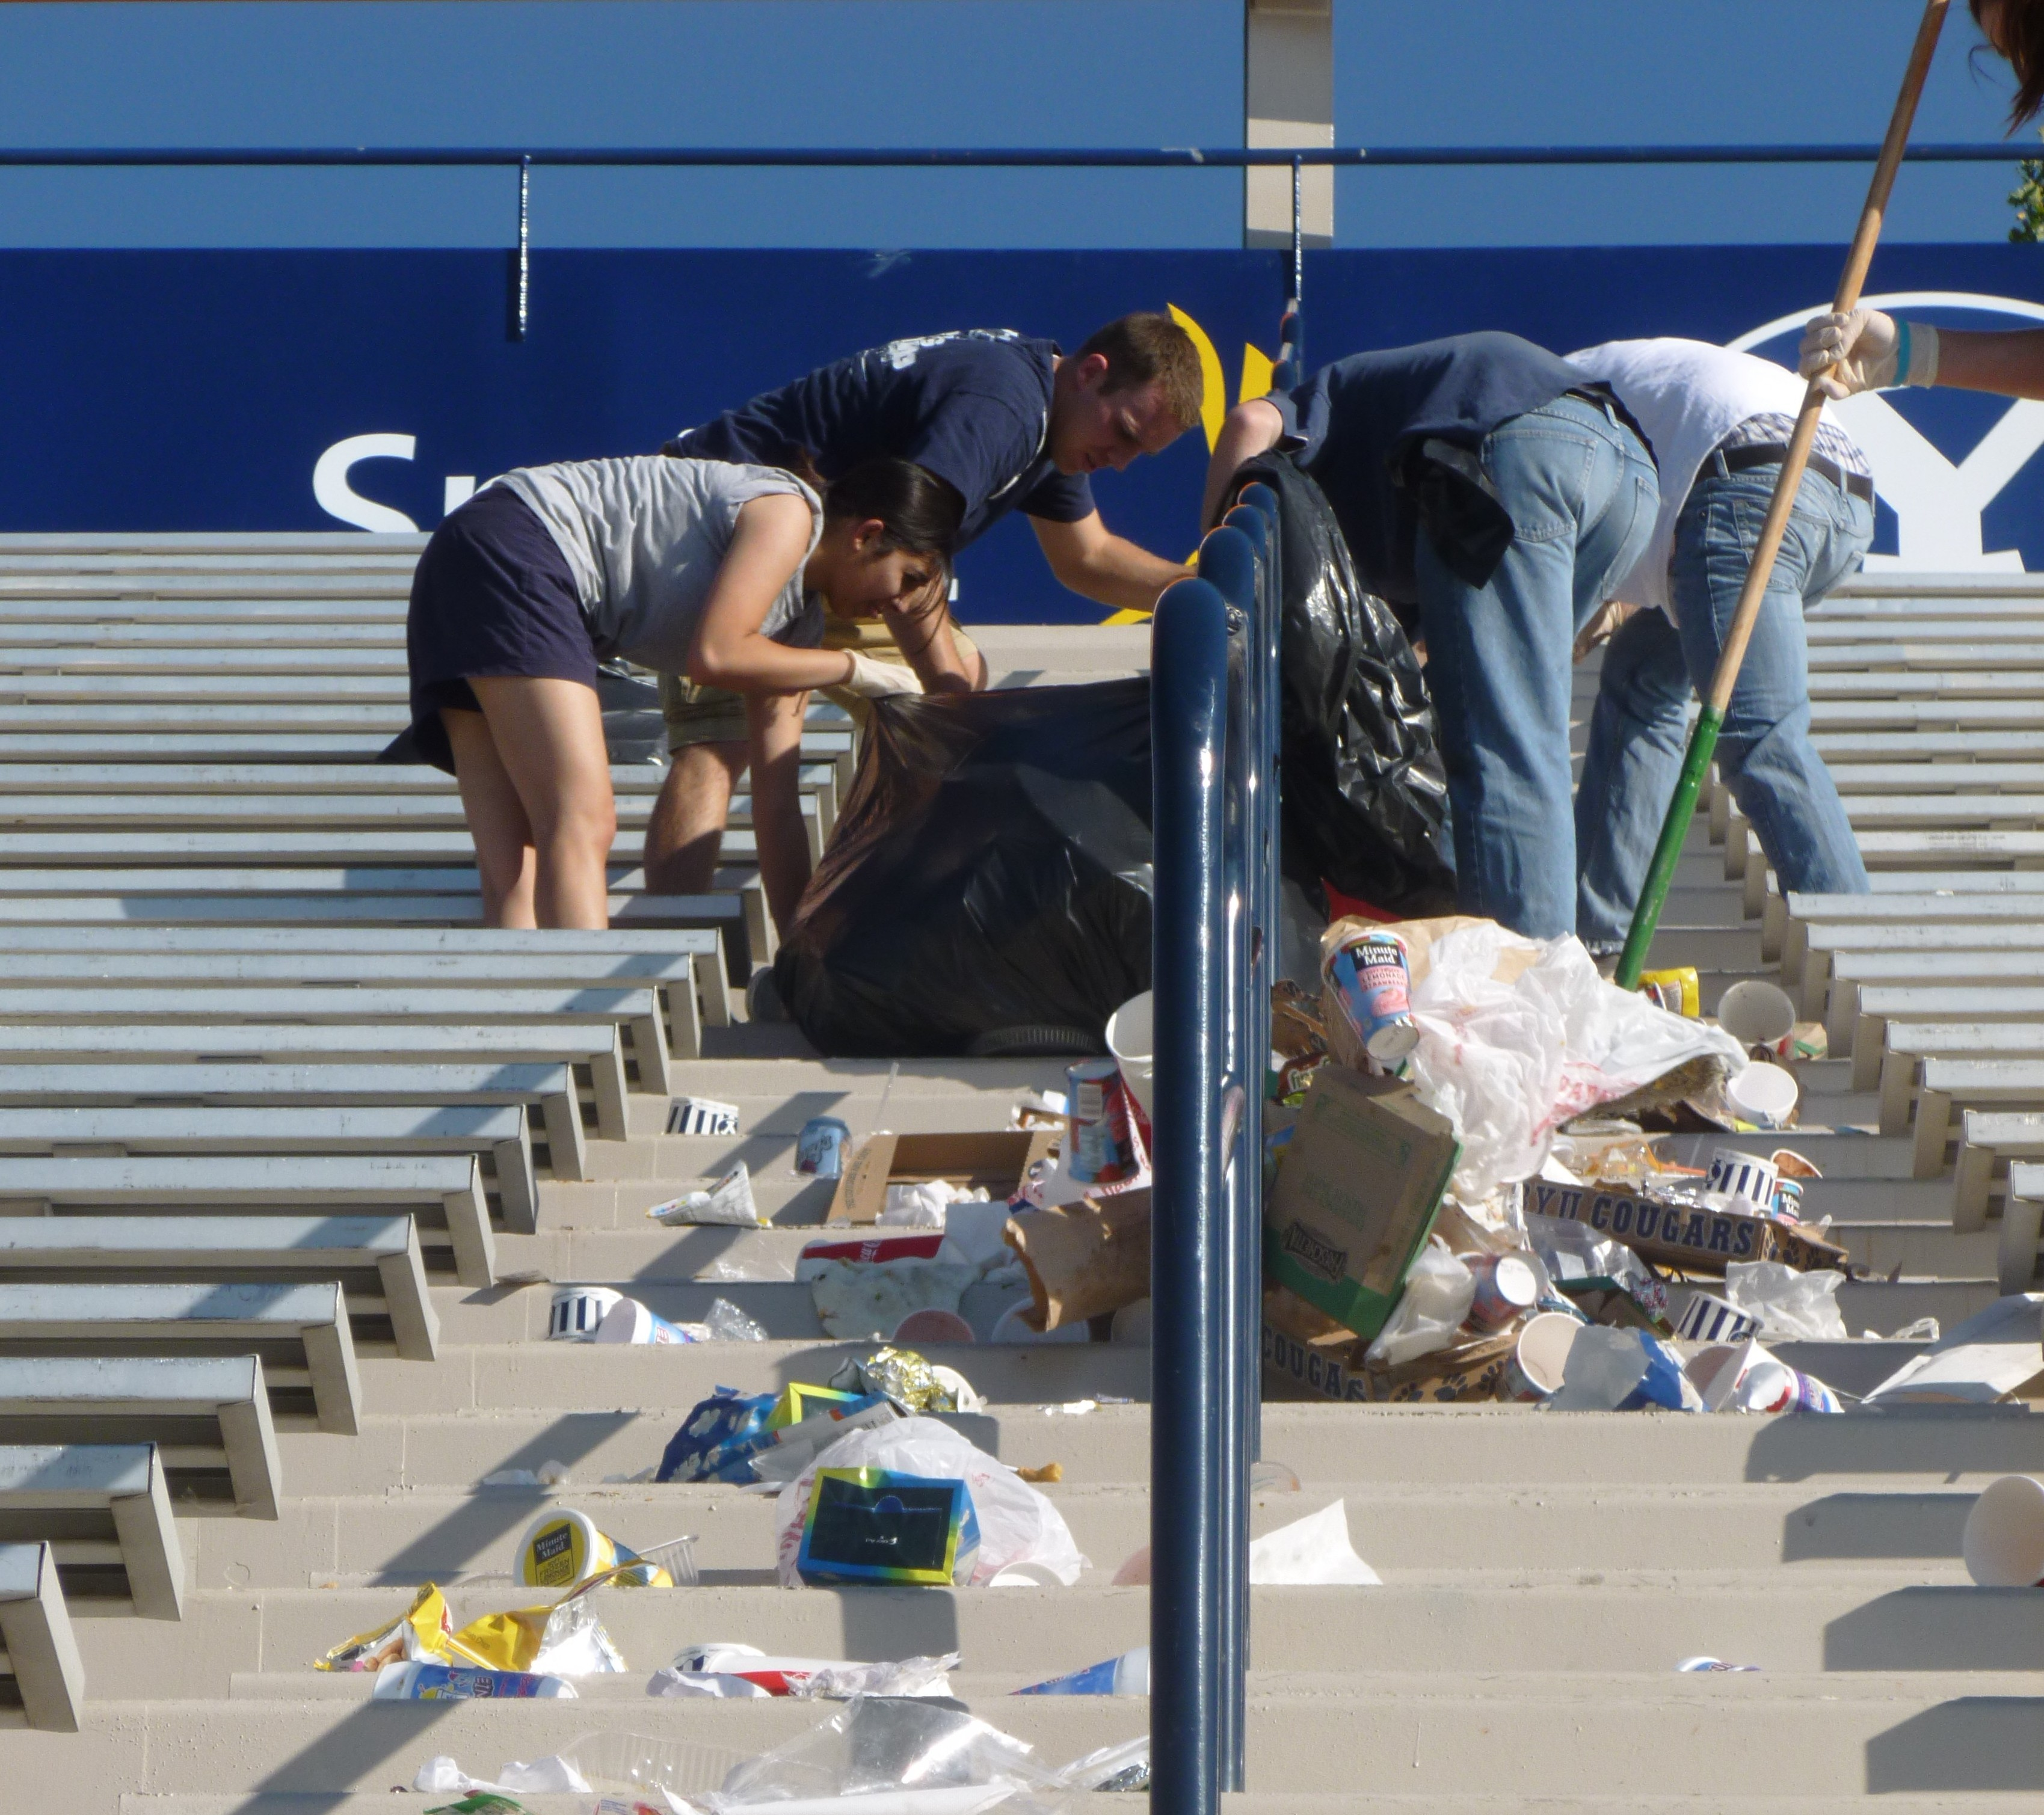 Cadets bag all the trash swept into ailes.